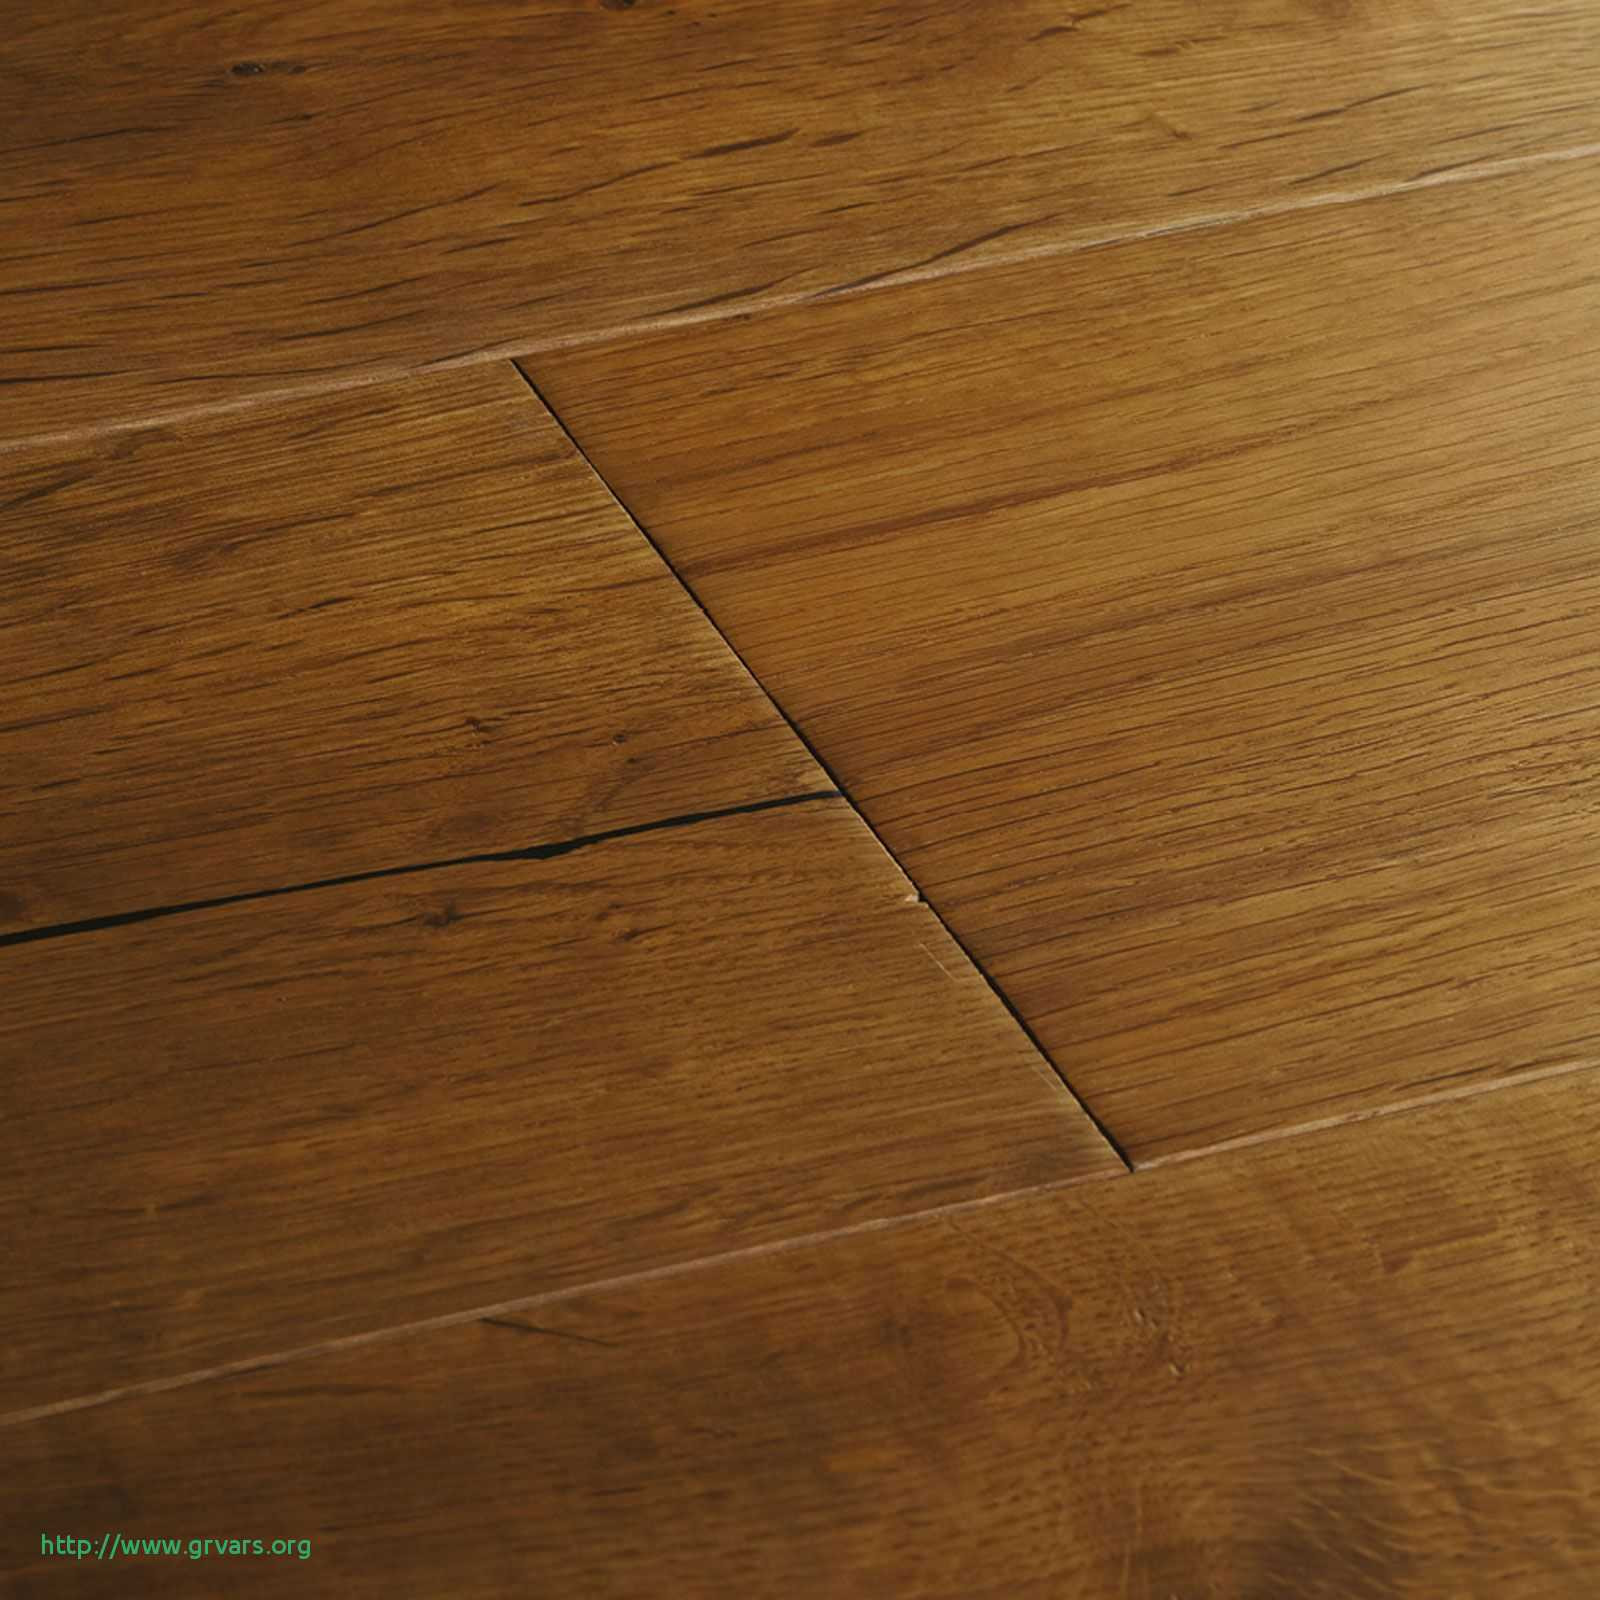 5 inch oak hardwood flooring of 20 unique hardwood floor plank sizes ideas blog with hardwood floor plank sizes a‰lagant berkeley smoked oak